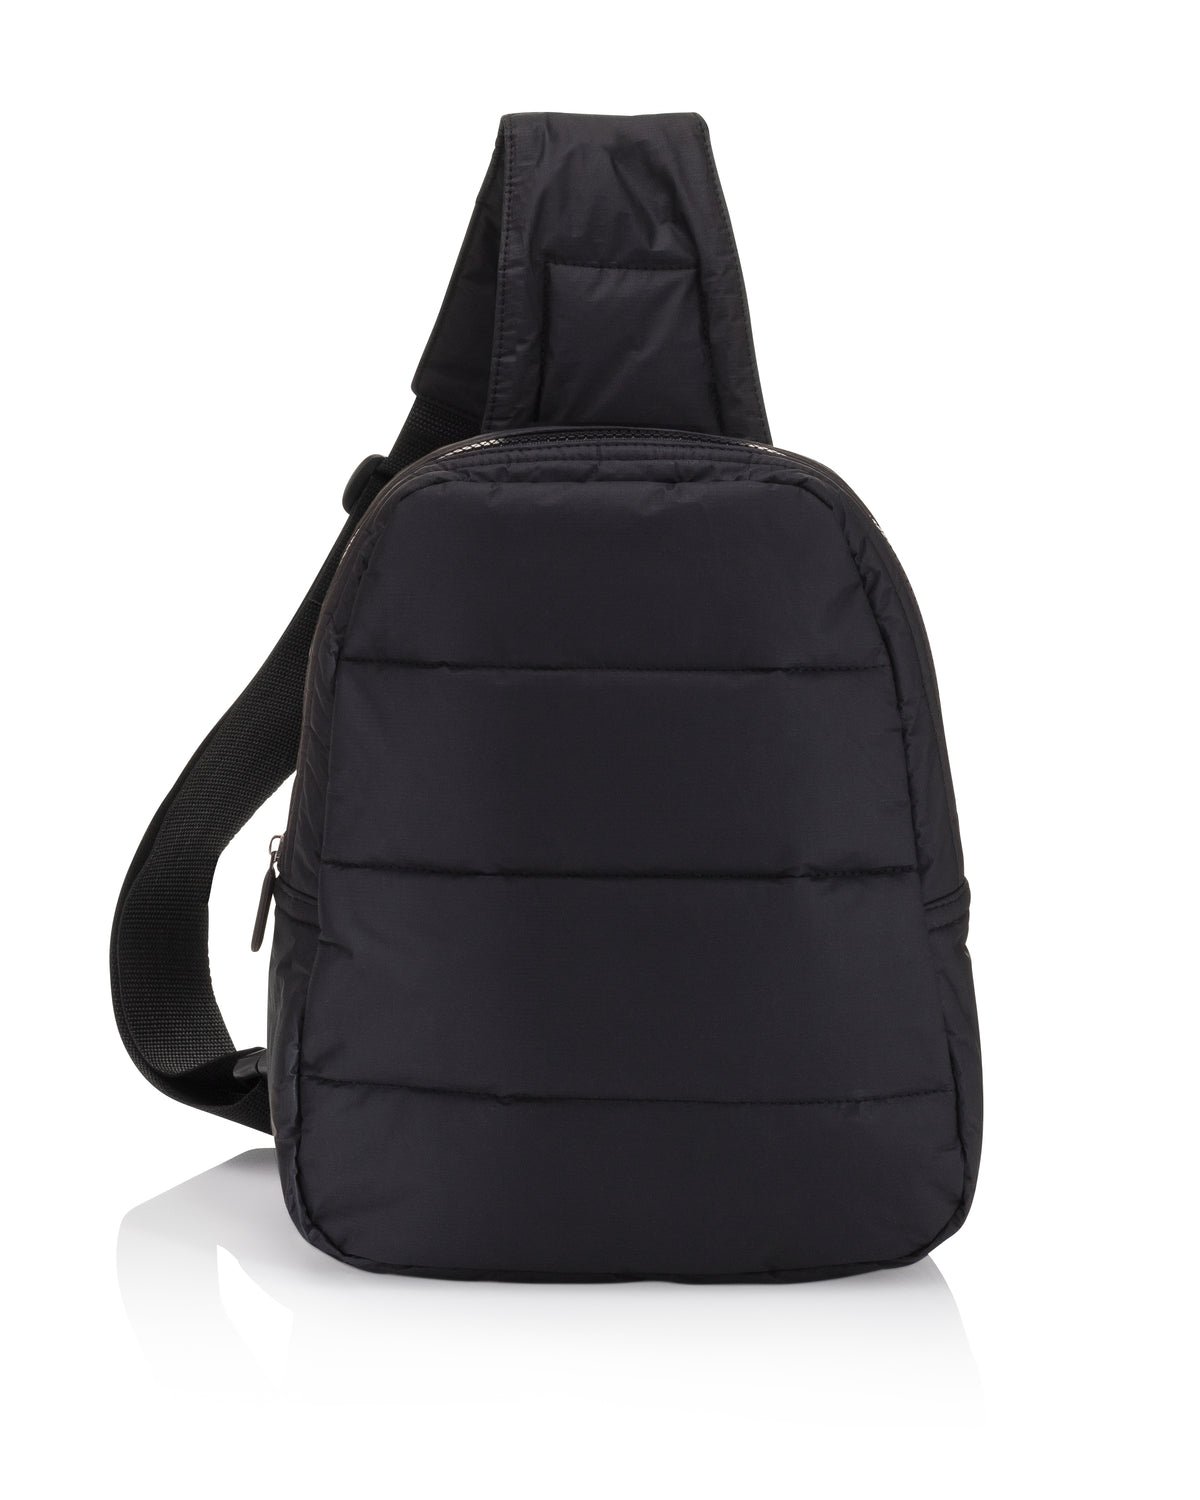 Crossbody Backpack - Black